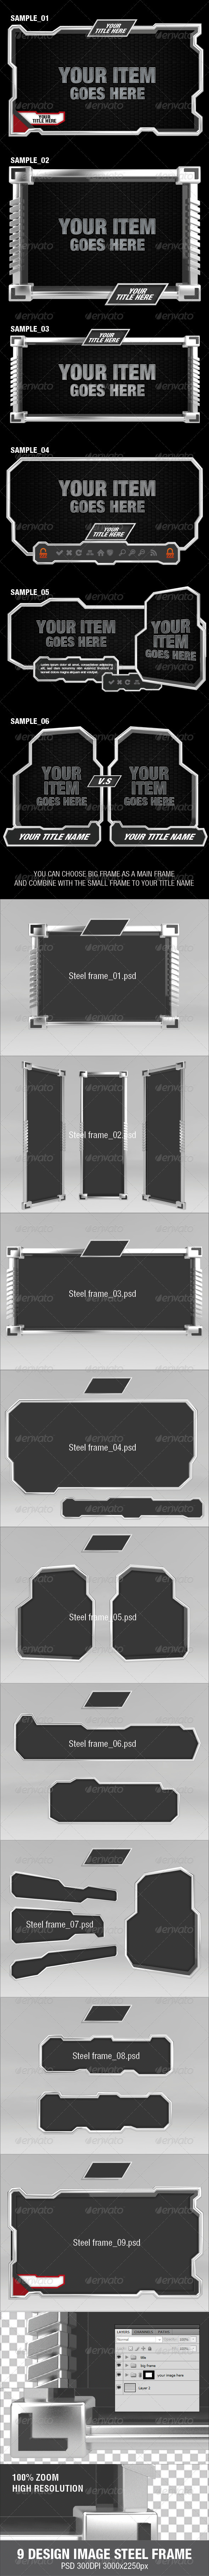 GraphicRiver 9 Design Image Steel Frame 2893080